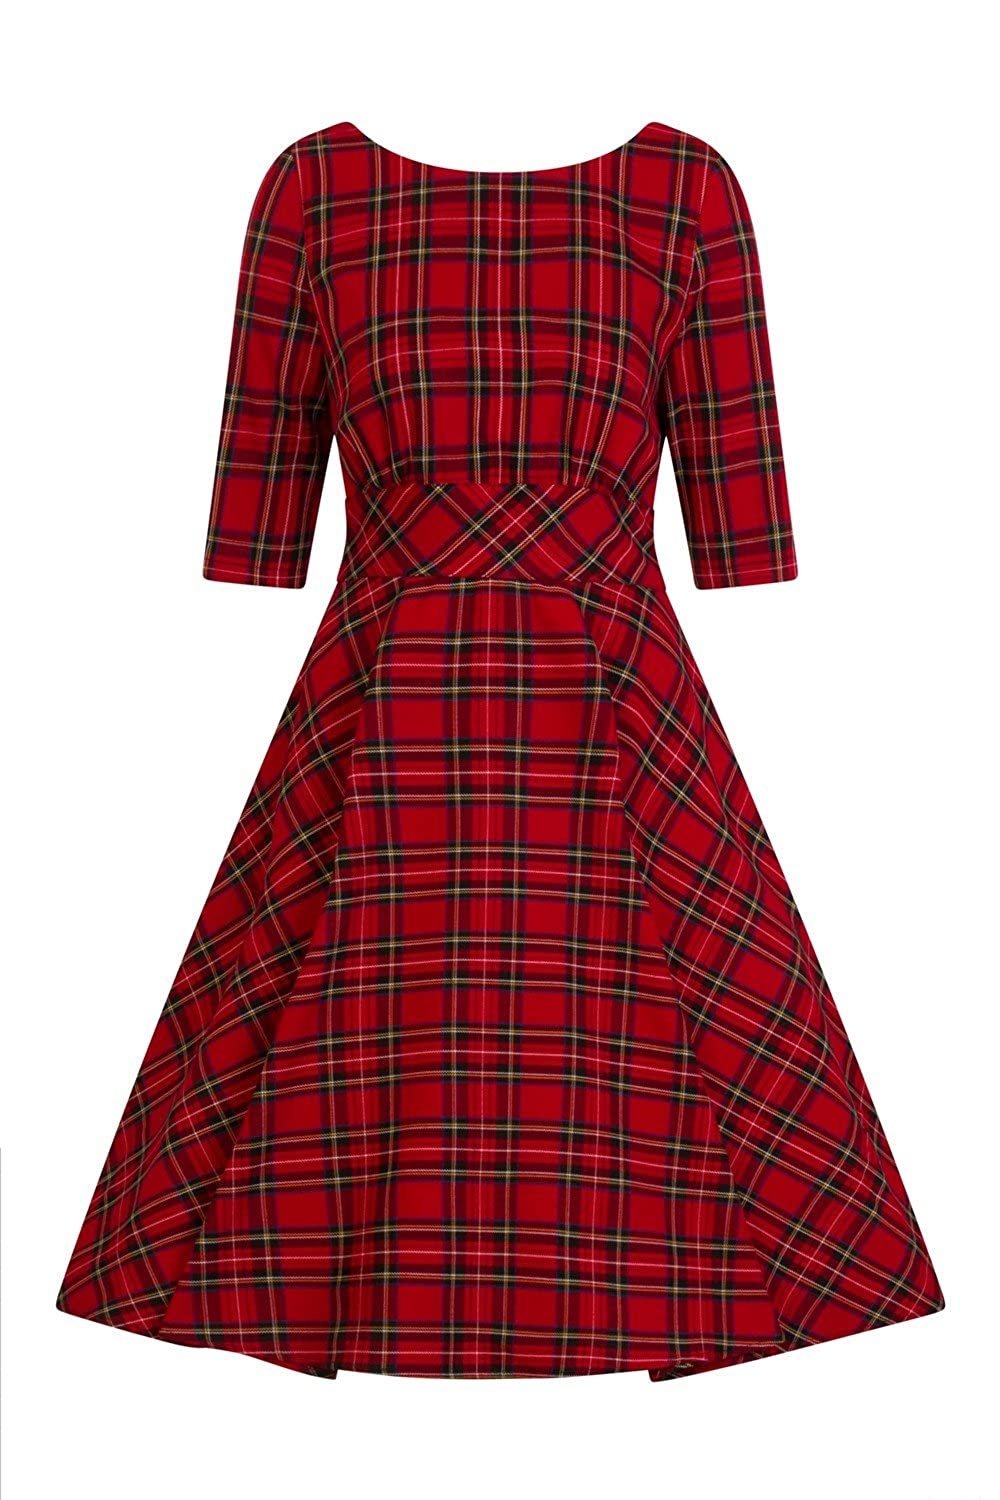 Rockabilly Dresses | Rockabilly Clothing | Viva Las Vegas Hell Bunny Irvine Tartan 1950s Vintage Retro Dress XS-4XL $72.99 AT vintagedancer.com